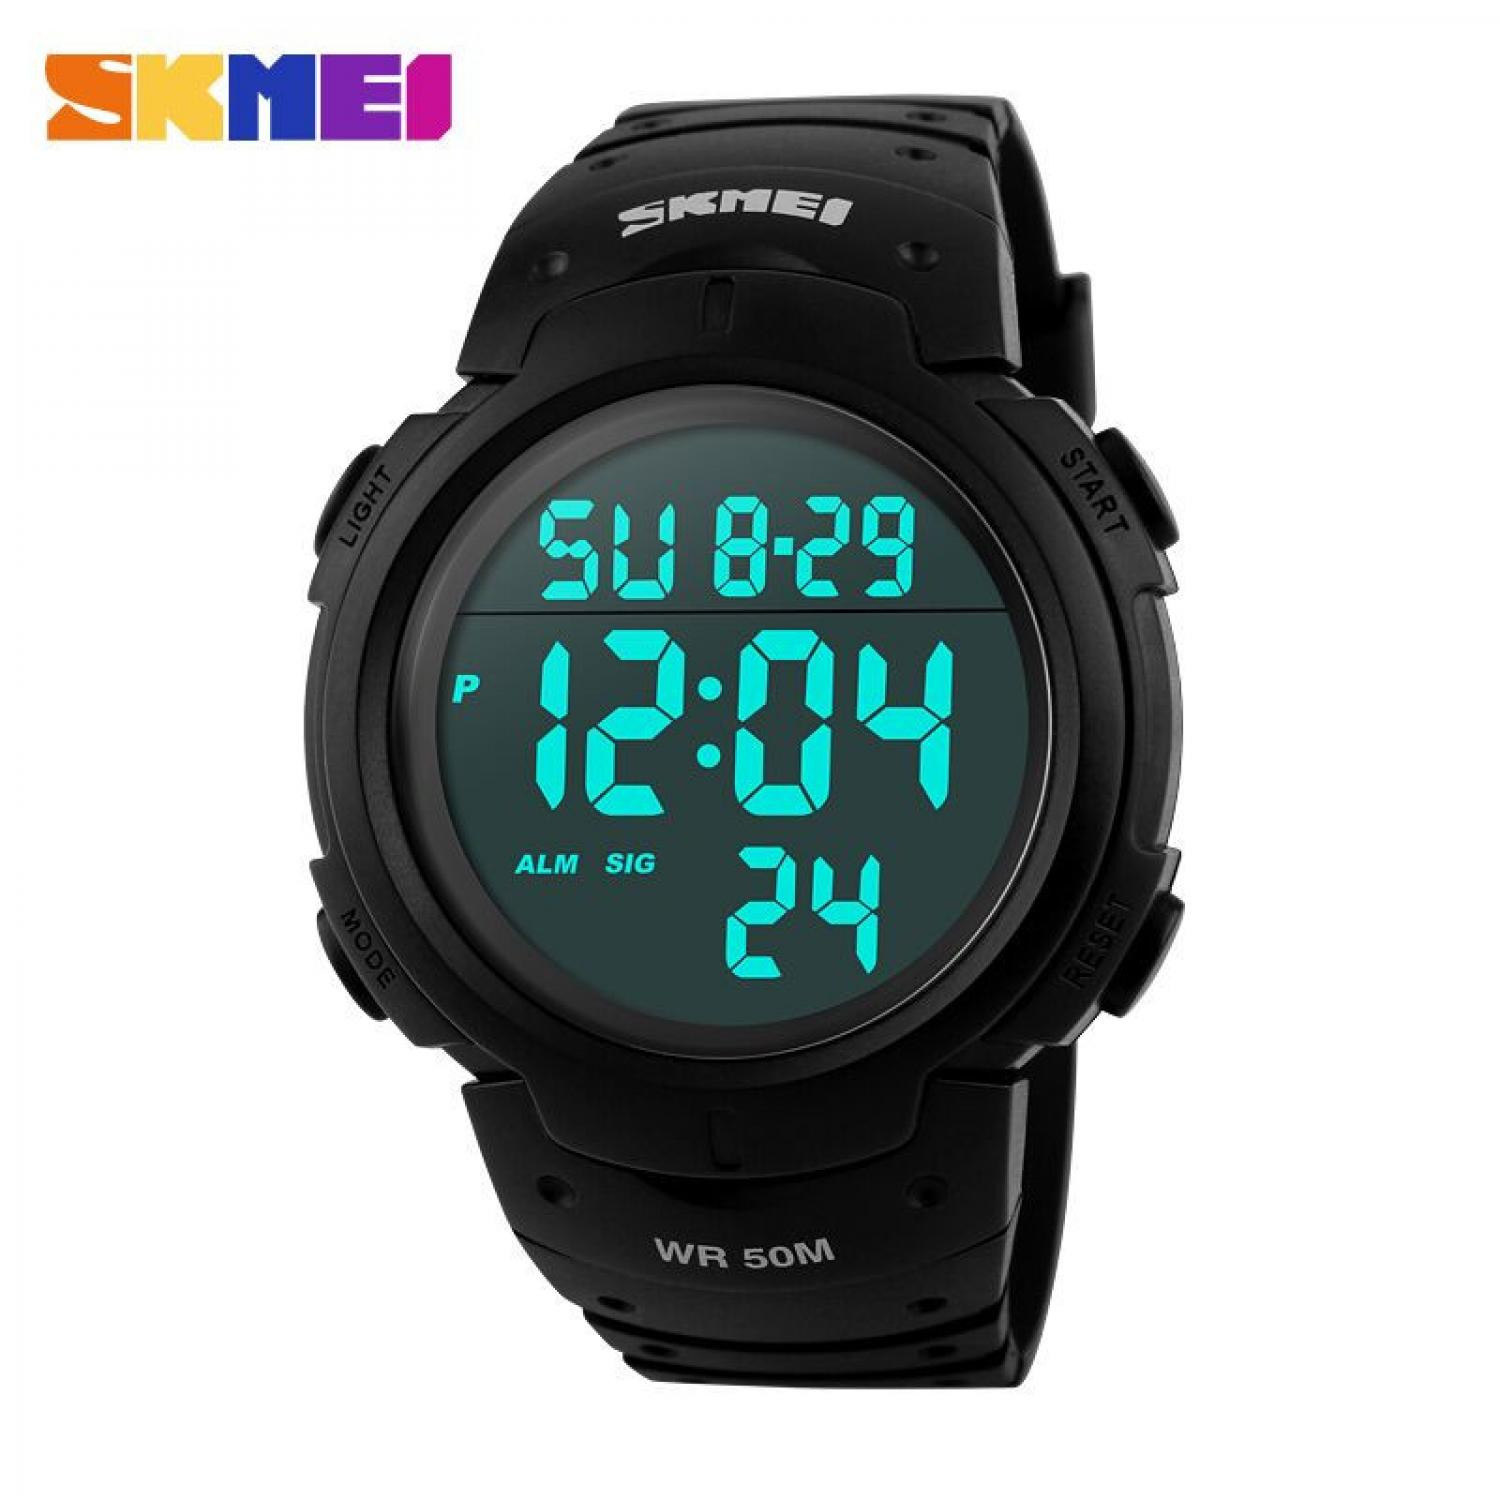 Jam Tangan Pria SKMEI Digital Pioneer Sport Watch Original DG1068